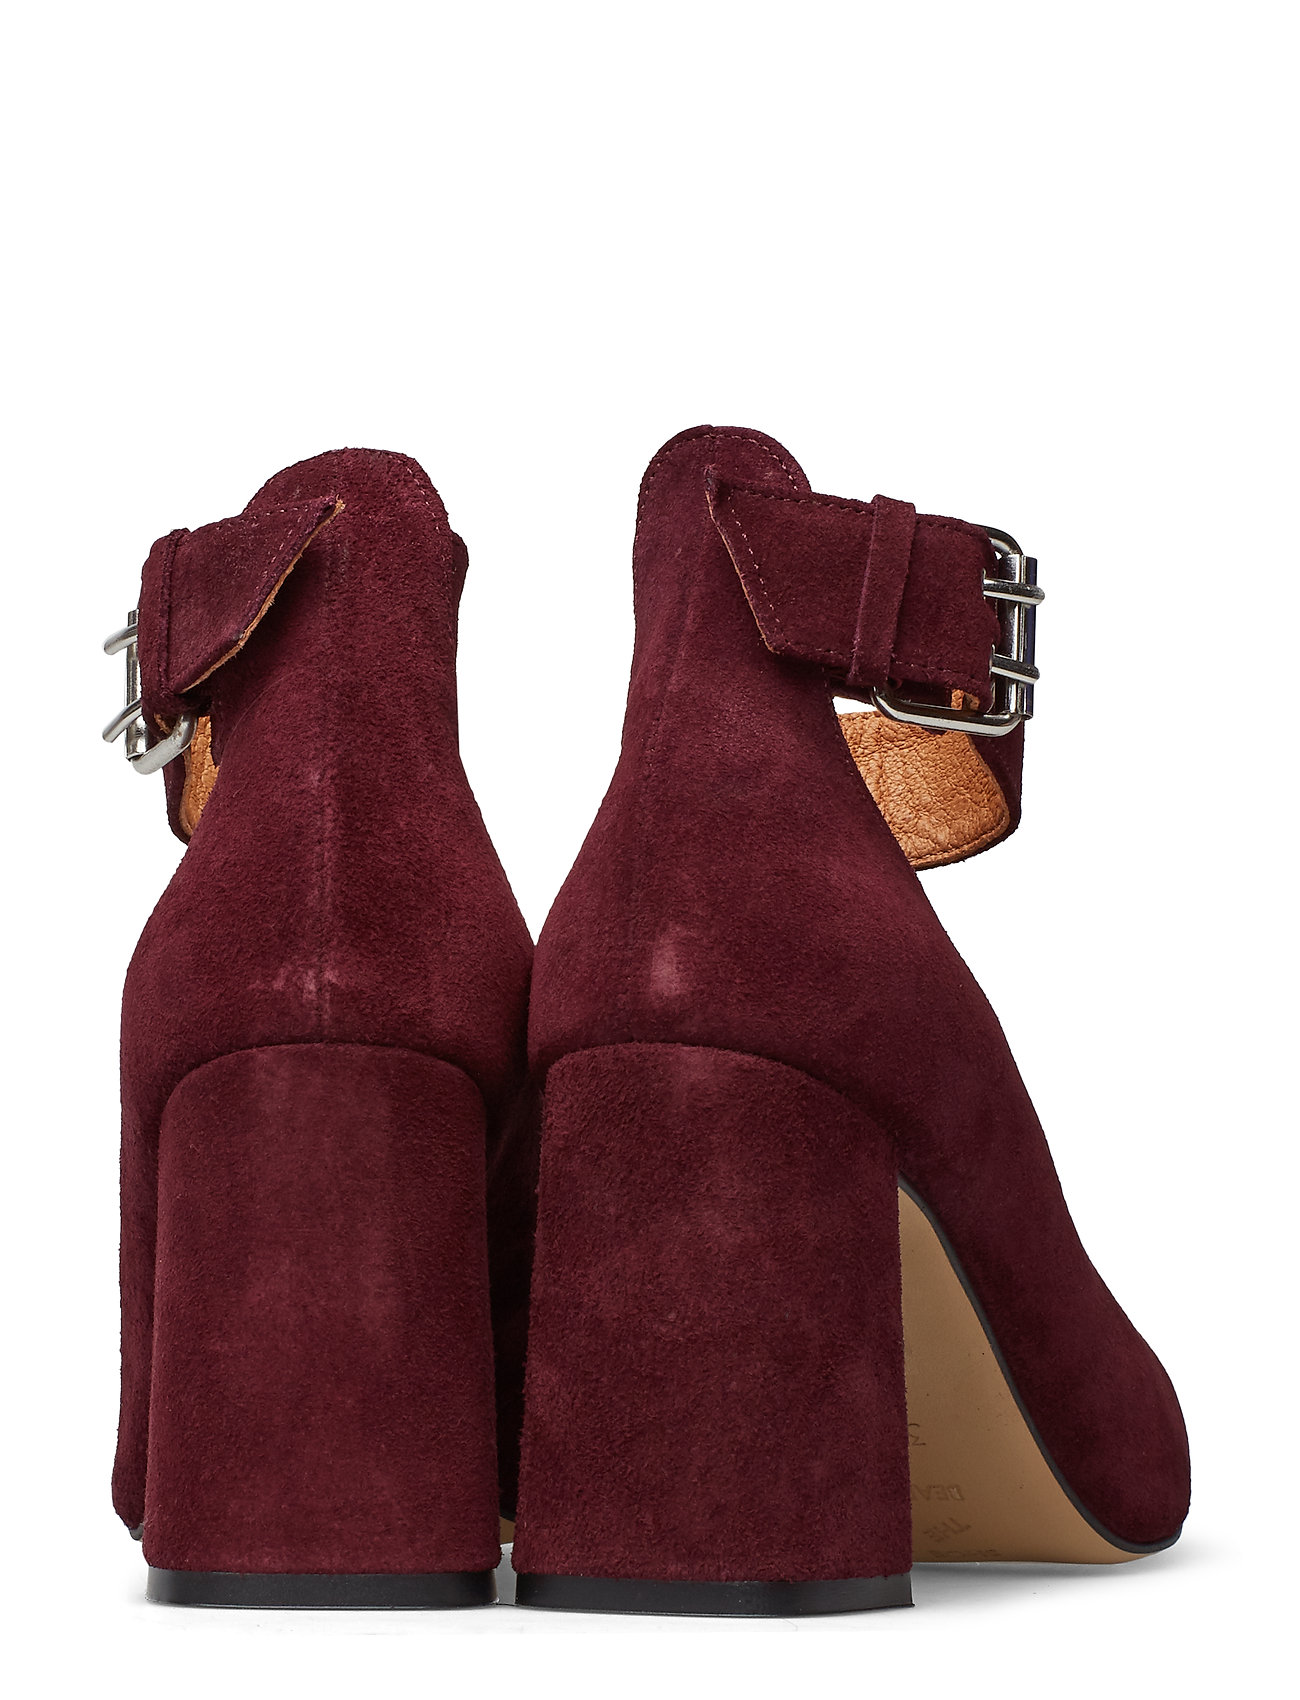 SburgundyShoe Bear Jane Ankle The Jane SUMGVpLzq